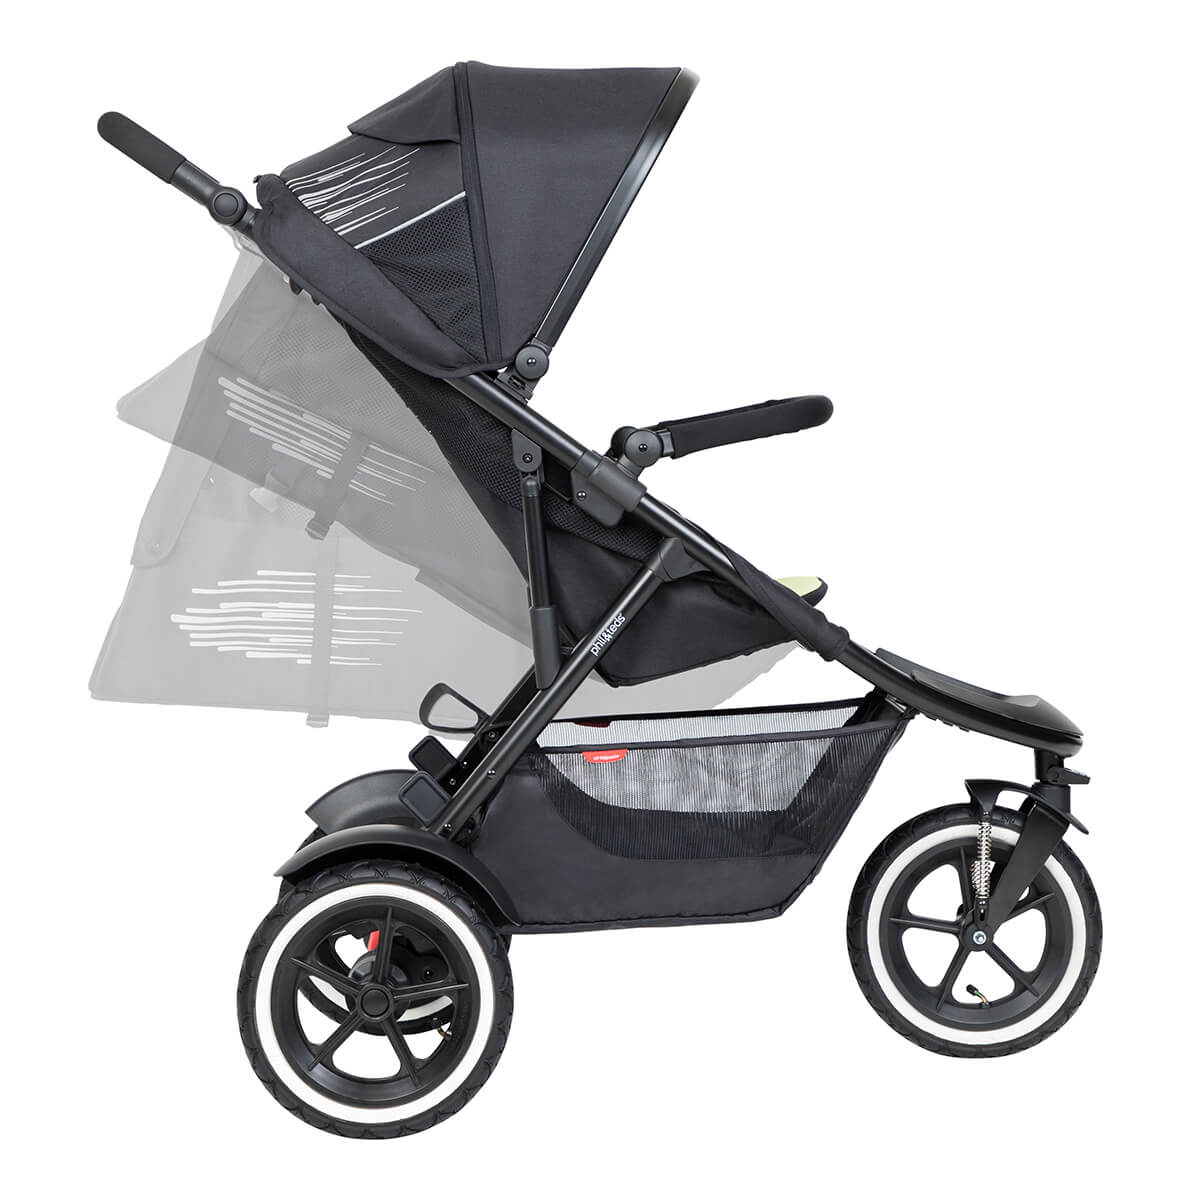 https://cdn.accentuate.io/4546157740137/19119322628201/philteds-sport-buggy-can-recline-in-multiple-angles-including-full-recline-for-newborn-baby-v1625778273564.jpg?1200x1200